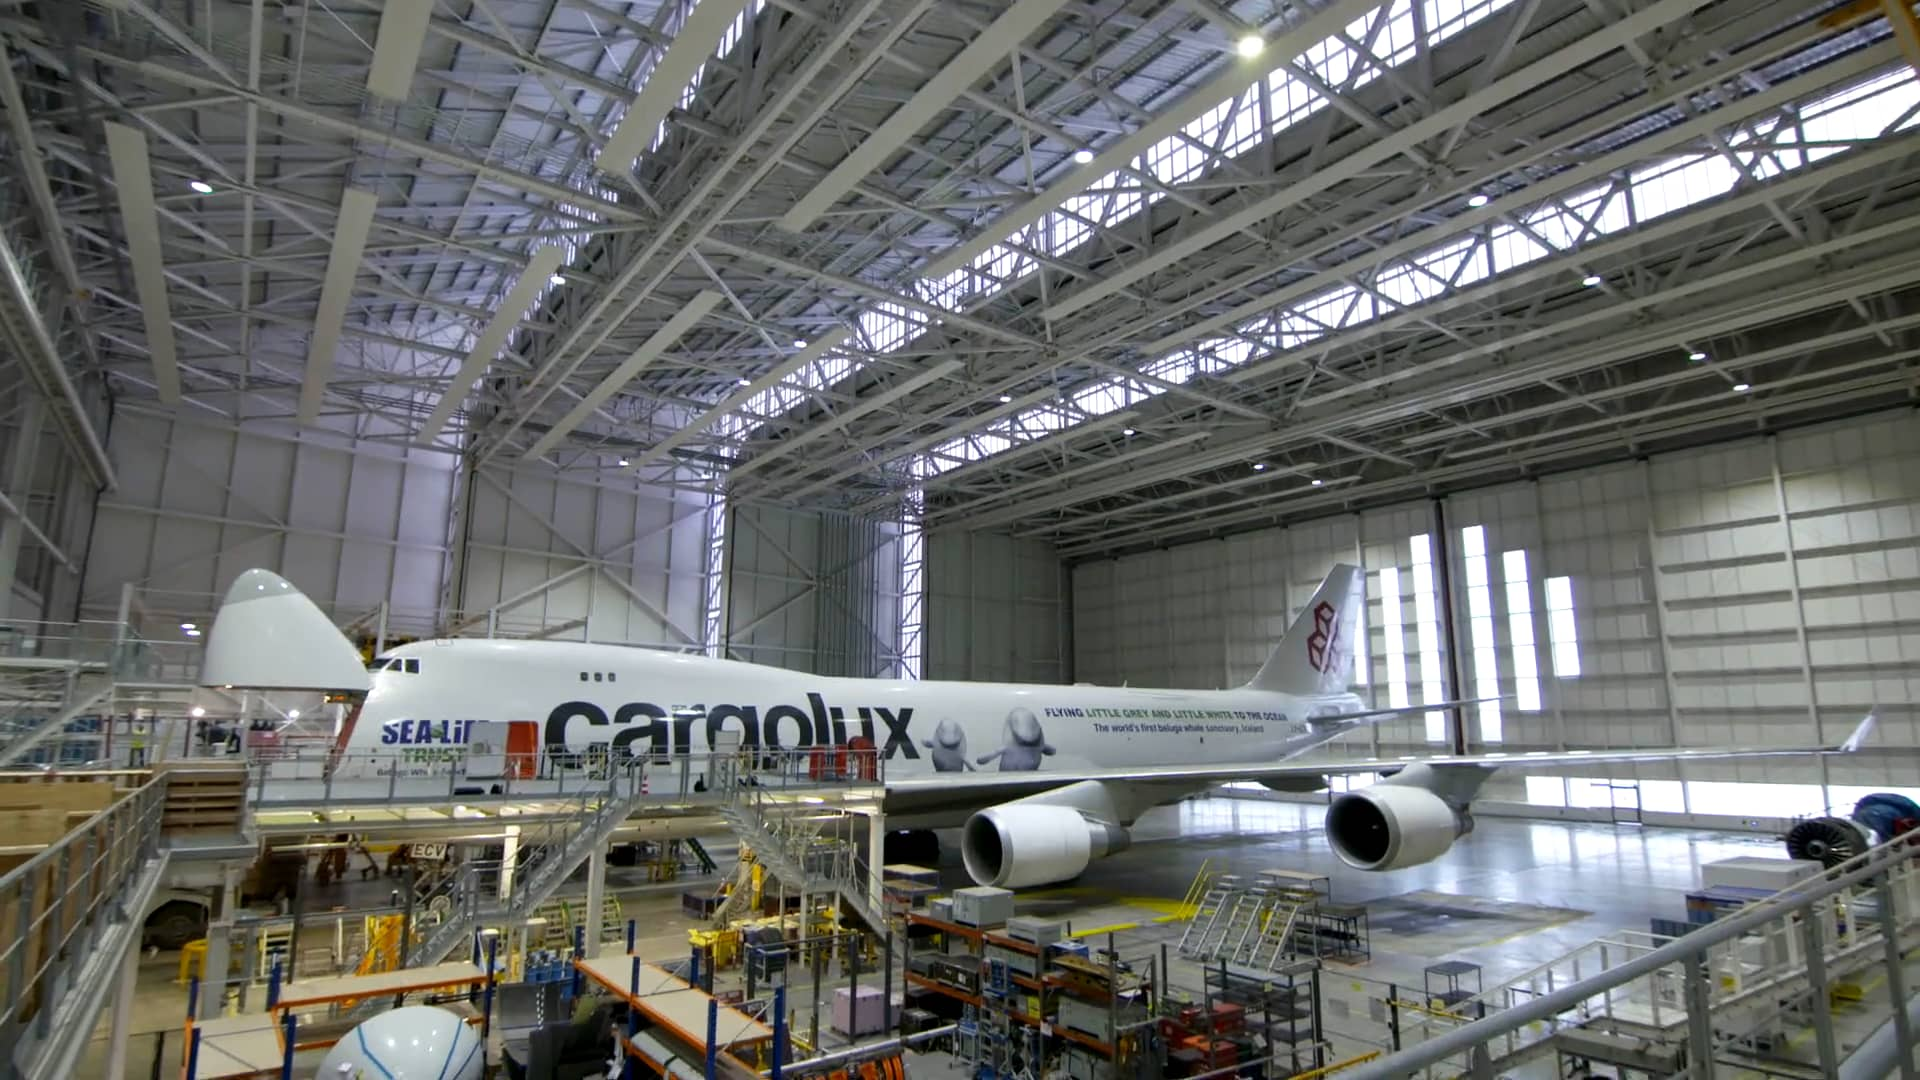 All,Brand Loyalty,Cargolux Airlines,Communication,Global Logistics Industry,Organization & Human Capital Practice,Performance Improvement Practice,Social Responsibility,Strategy & Innovation,Strategy & Innovation Practice,Travel & Transportation Industry